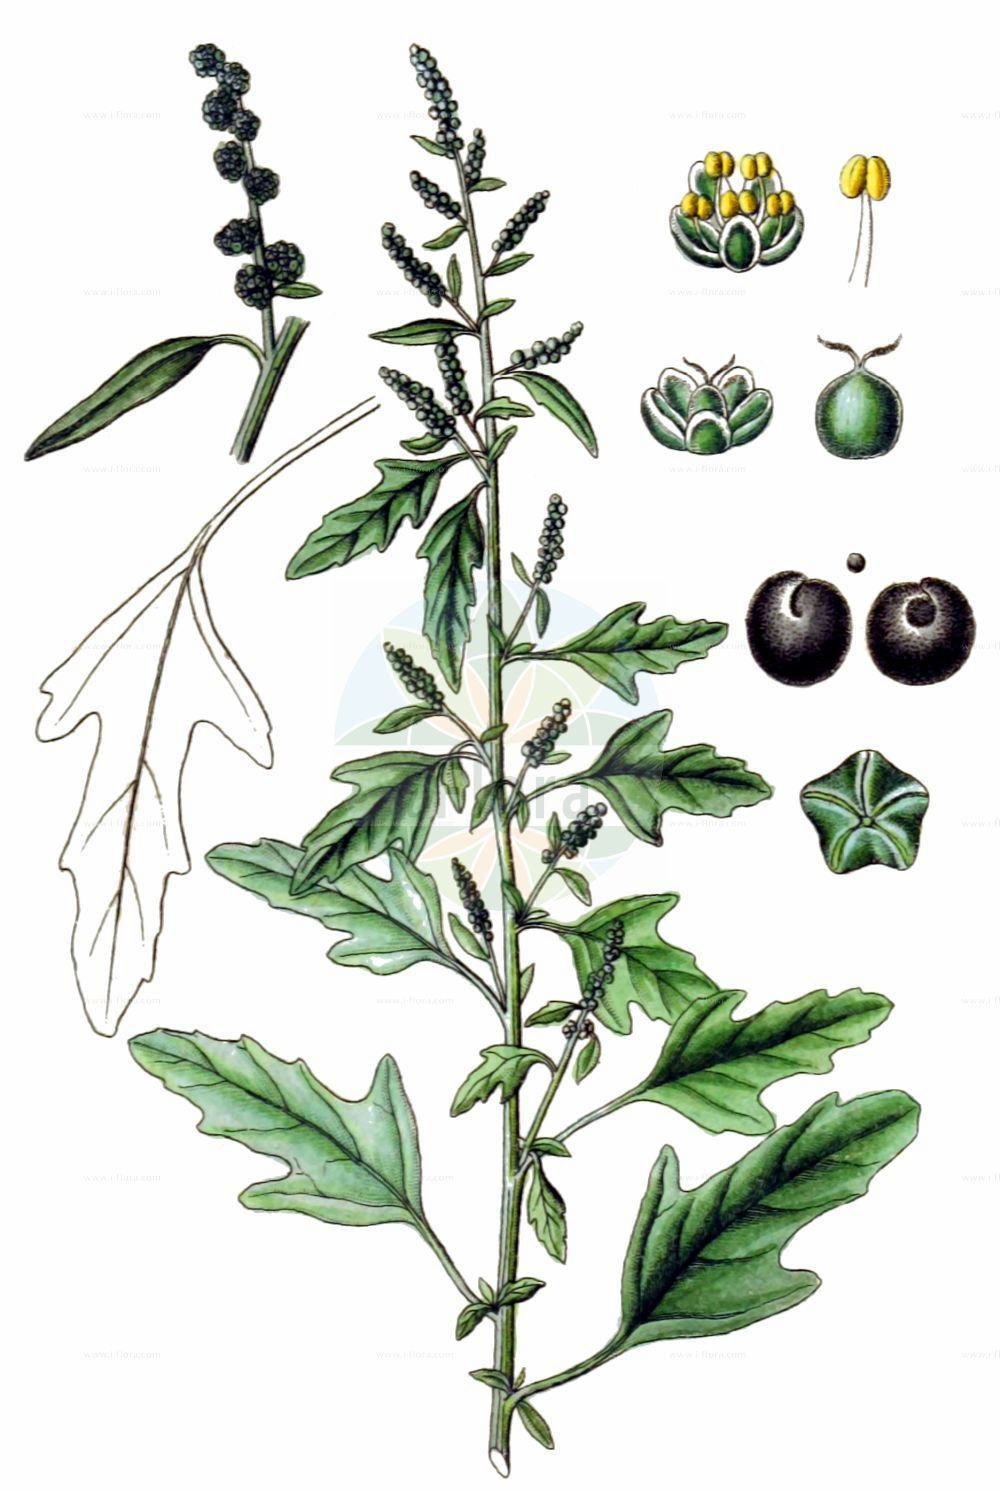 Historische Abbildung von Chenopodium ficifolium (Feigenblaettriger Gaensefuss - Fig-leaved Goosefoot). Das Bild zeigt Blatt, Bluete, Frucht und Same. ---- Historical Drawing of Chenopodium ficifolium (Feigenblaettriger Gaensefuss - Fig-leaved Goosefoot).The image is showing leaf, flower, fruit and seed.(Chenopodium ficifolium,Feigenblaettriger Gaensefuss,Fig-leaved Goosefoot,Chenopodium ficifolium,Feigenblaettriger Gaensefuss,Fig-leaved Goosefoot,Figleaf Goosefoot,Chenopodium,Gaensefuss,Goosefoot,Amaranthaceae,Fuchsschwanzgewaechse,Pigweed family,Blatt,Bluete,Frucht,Same,leaf,flower,fruit,seed,Sturm (1796f))